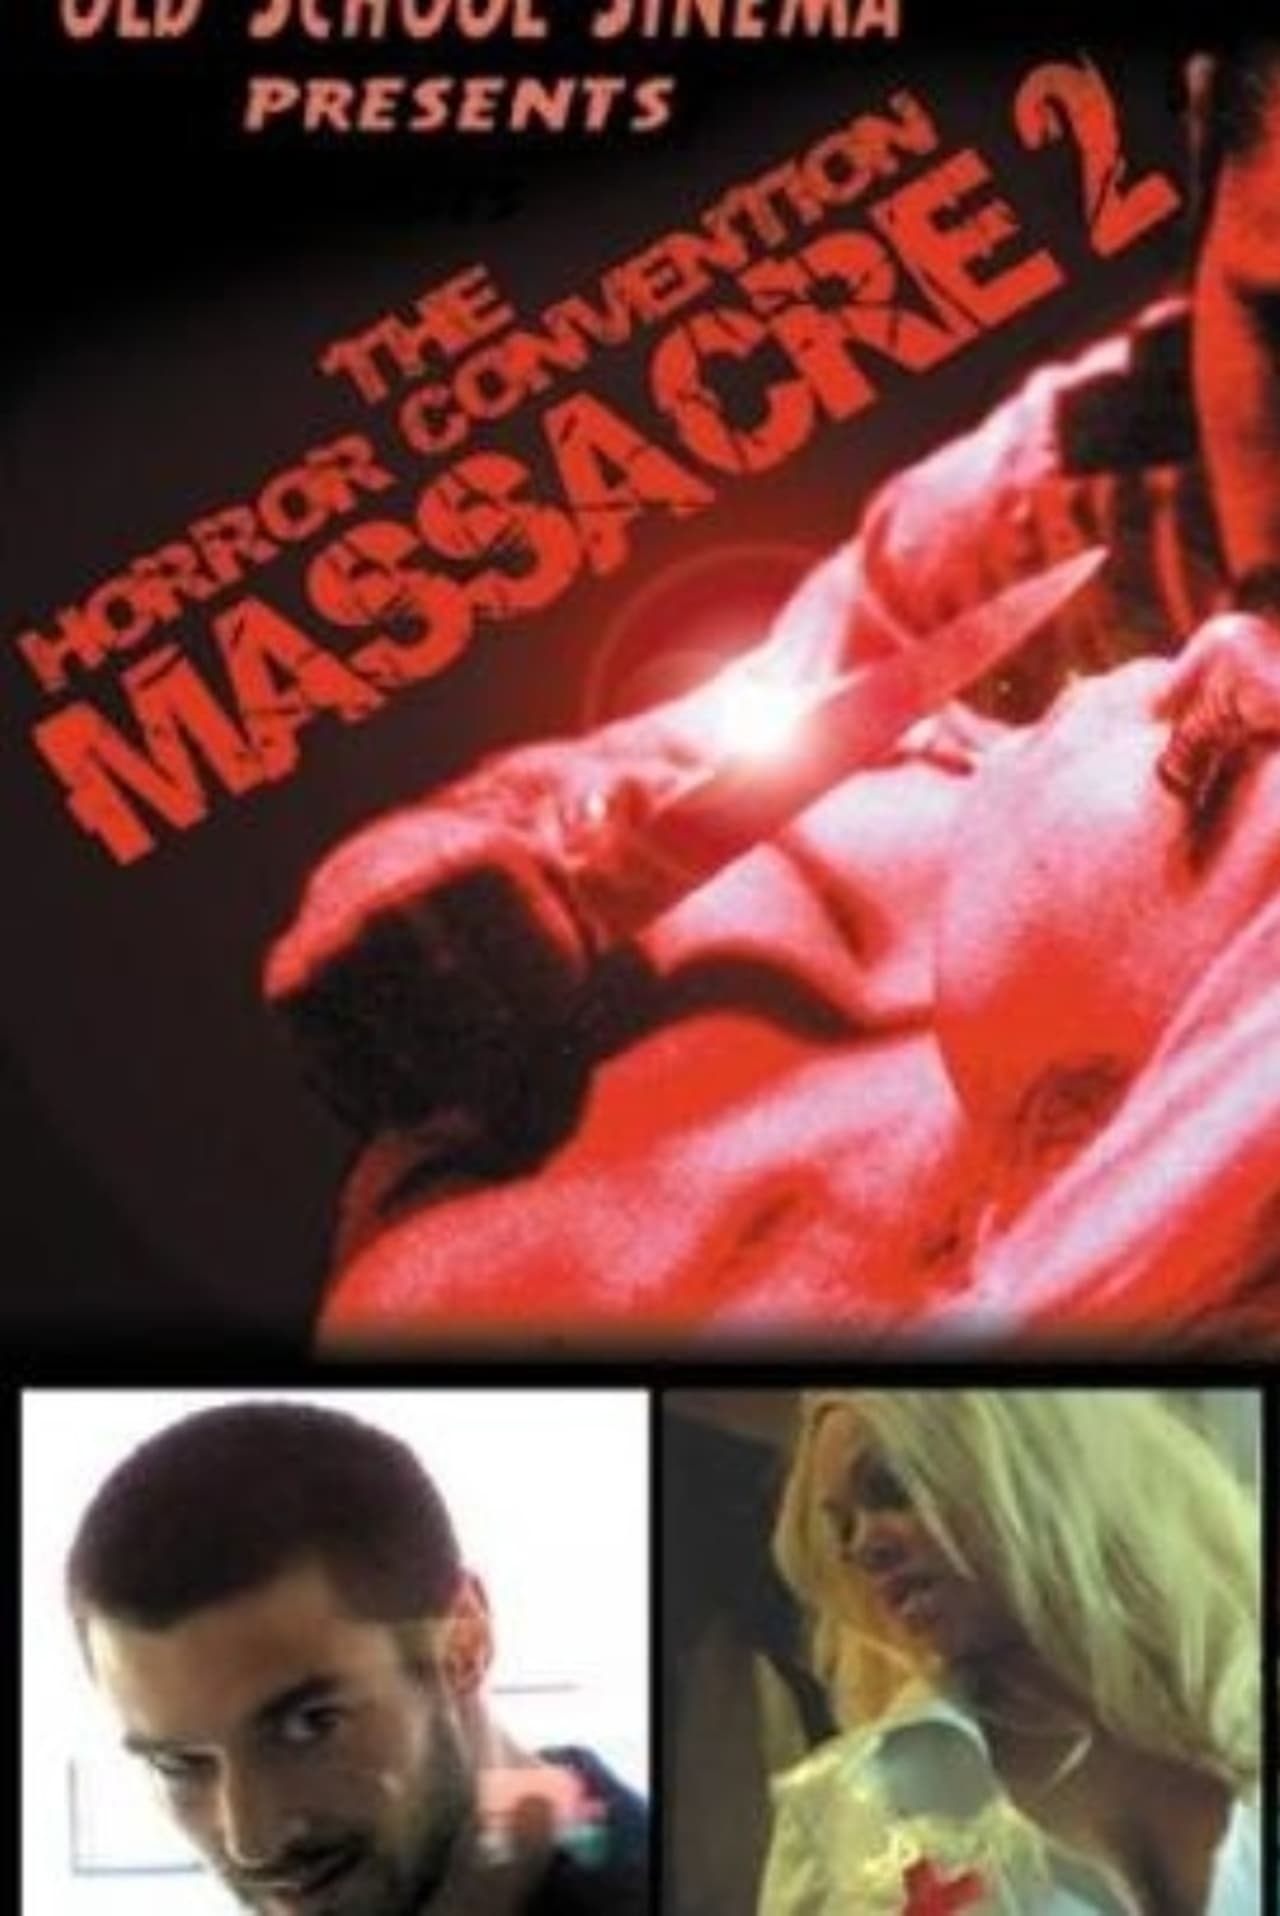 The Horror Convention Massacre 2